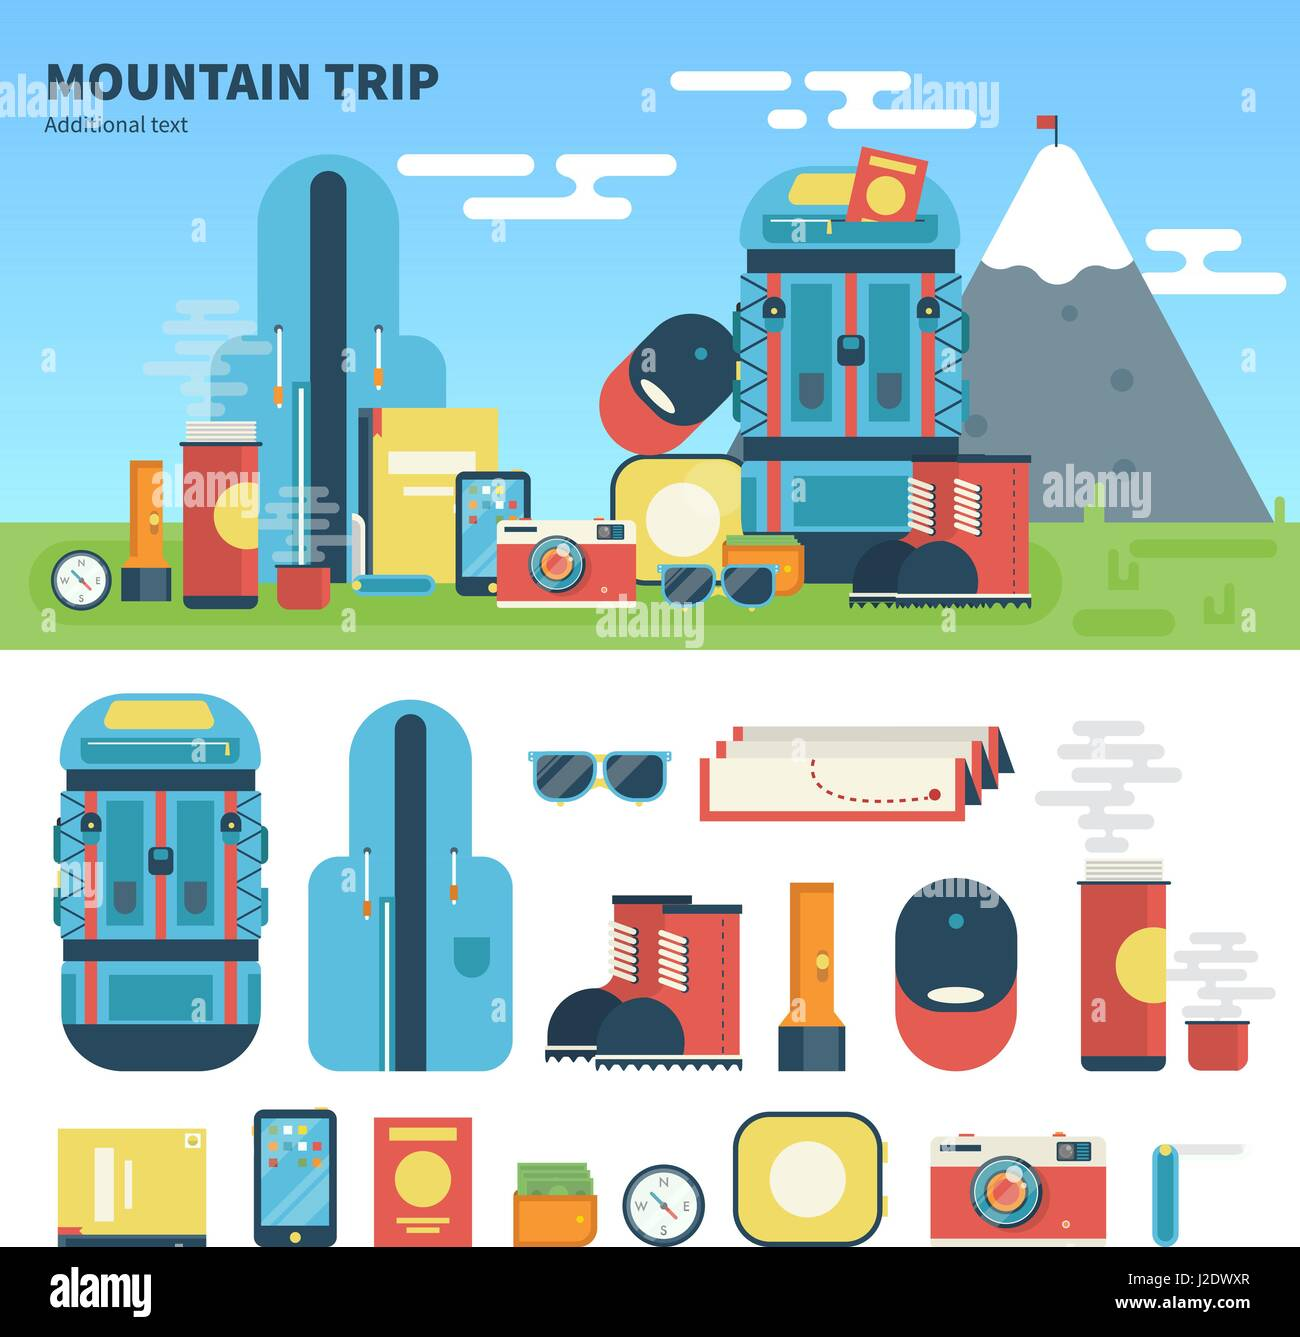 Equipment for mountain trip - Stock Vector